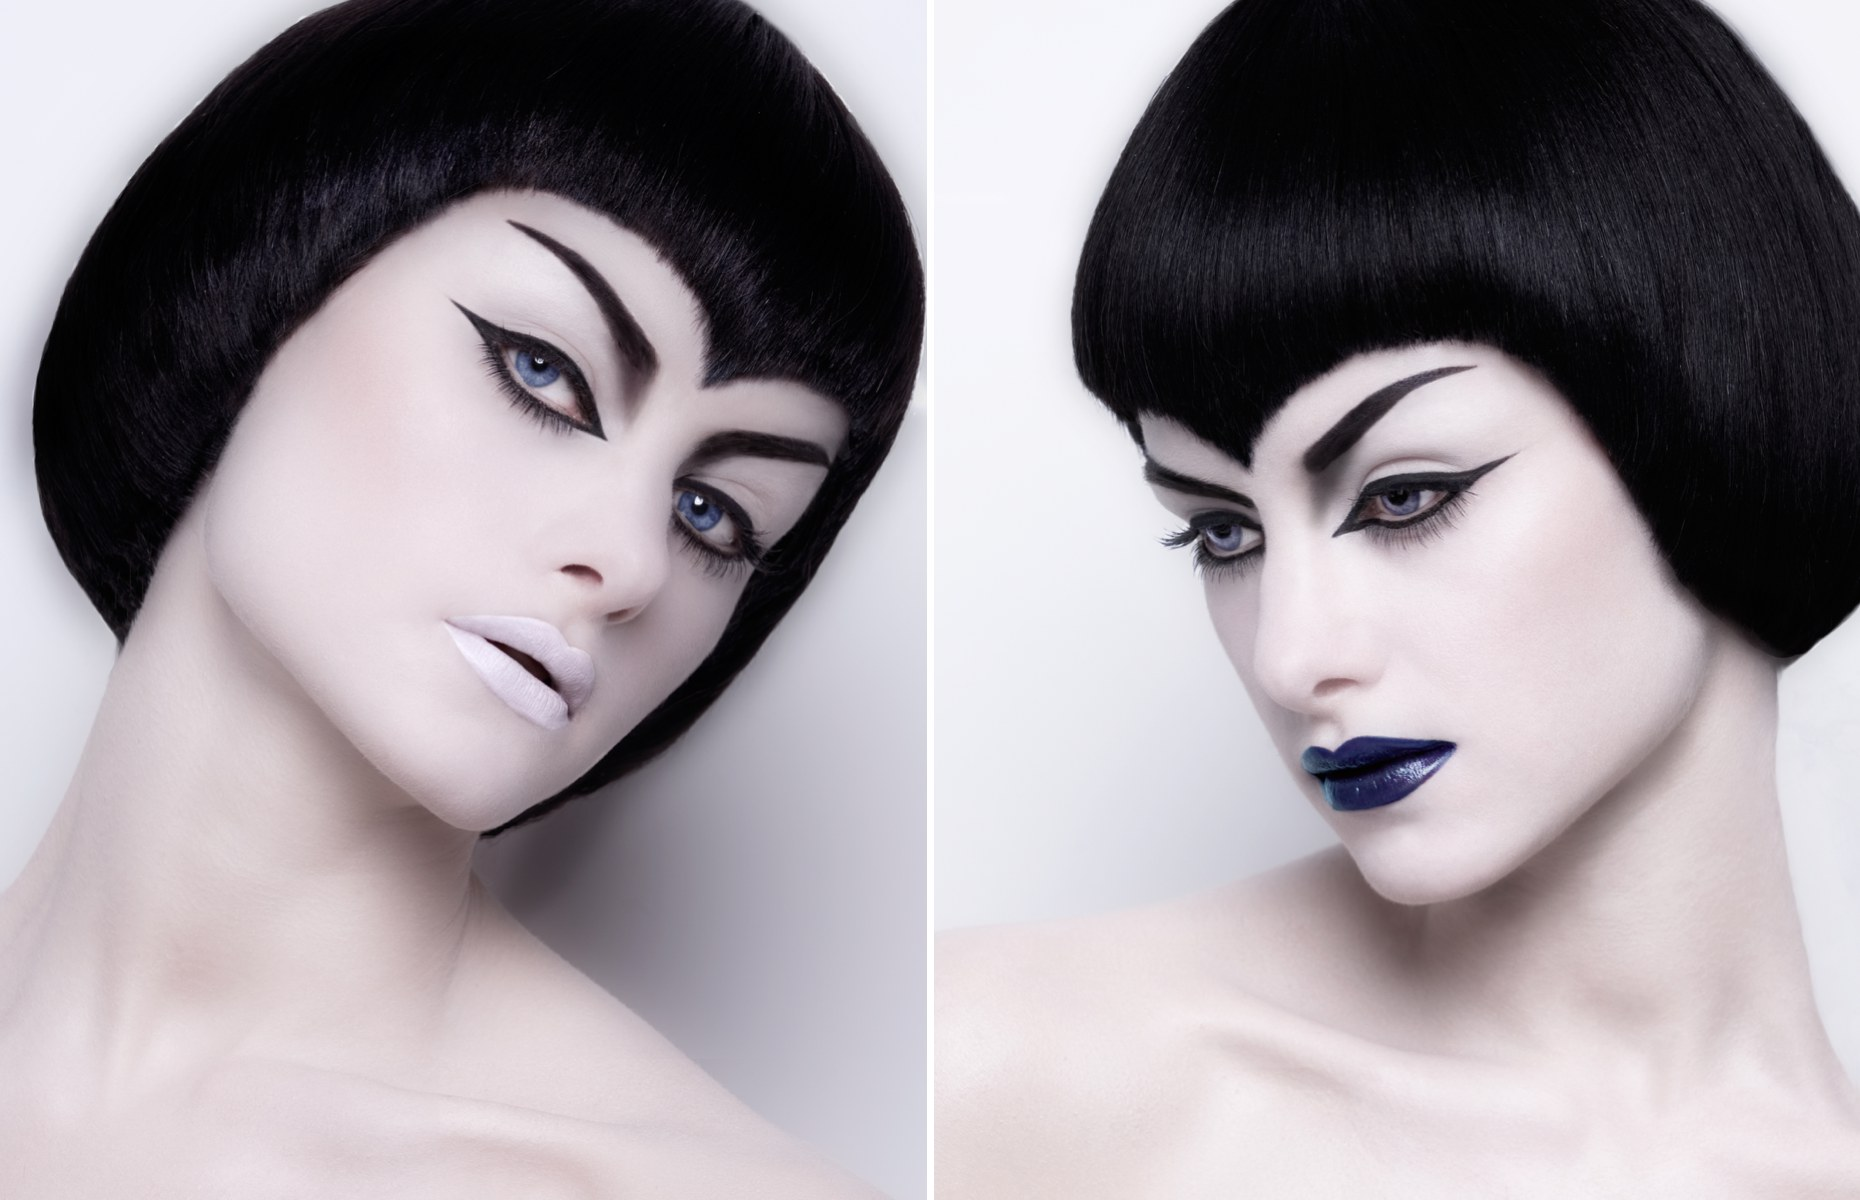 NEW YORK BEAUTY FASHION PHOTOGRAPHER FRANKLIN THOMPSON